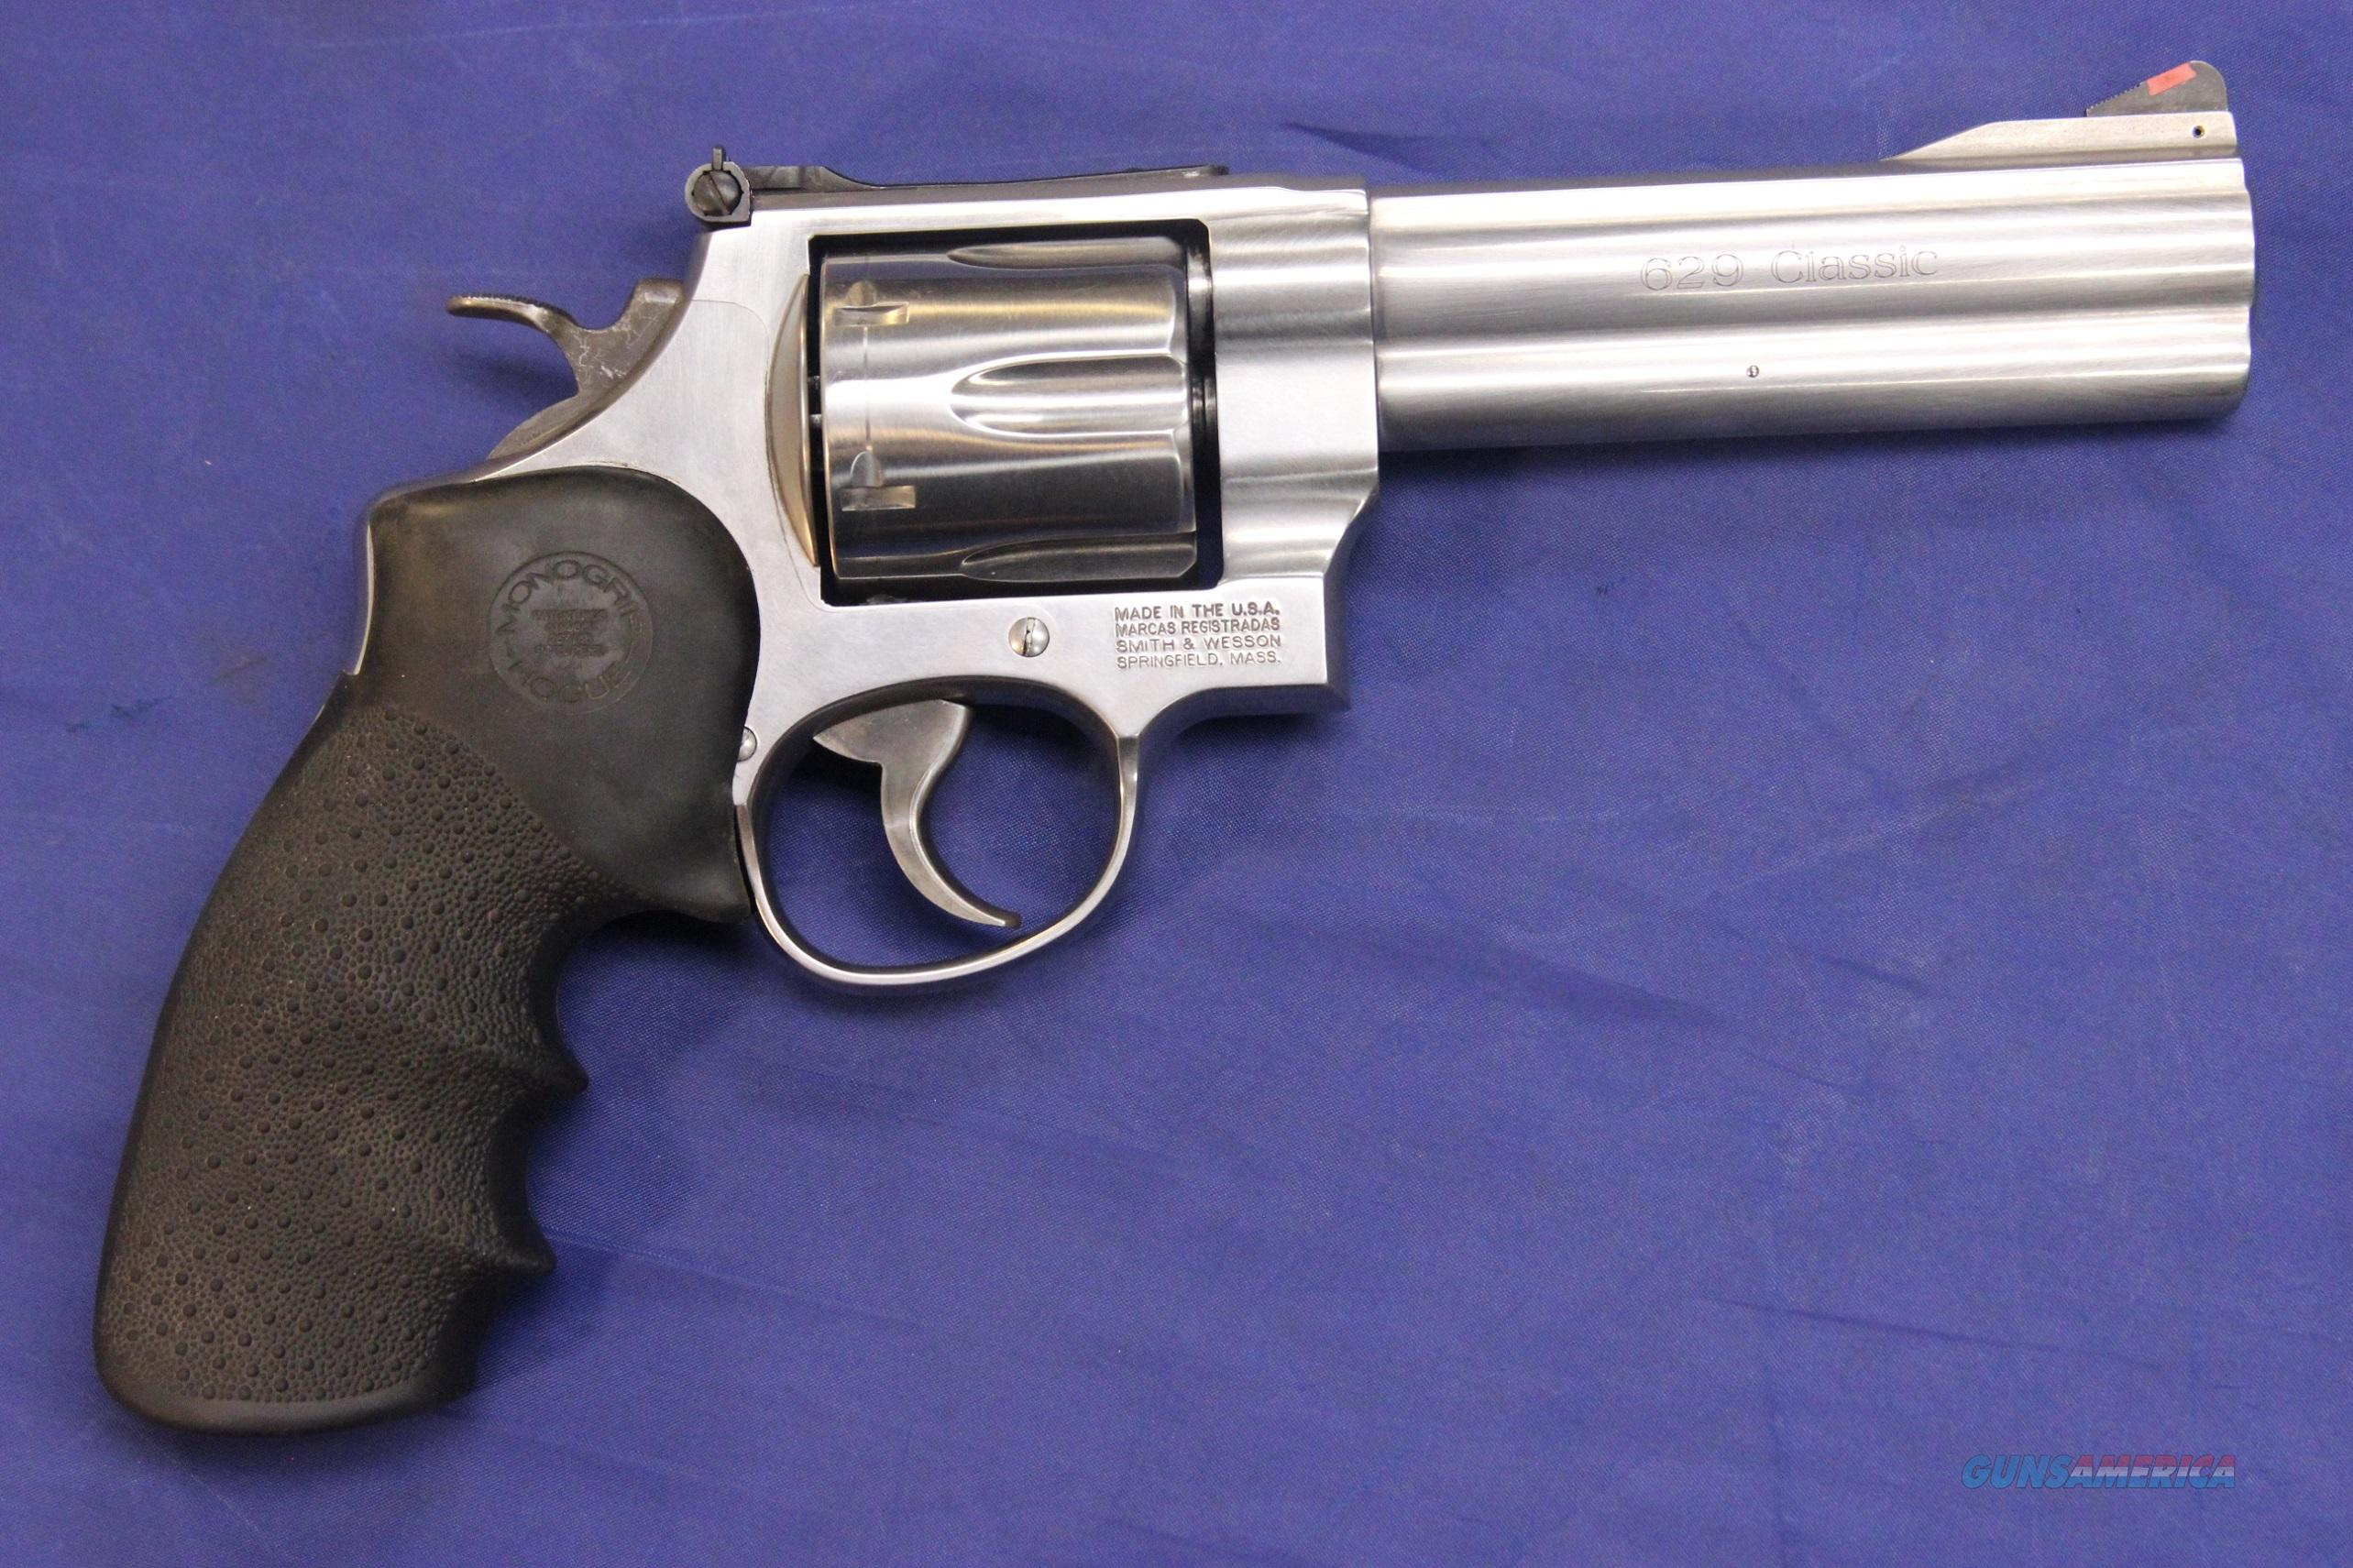 "SMITH & WESSON 629 CLASSIC .44 MAG 5"" STAINLESS  Guns > Pistols > Smith & Wesson Revolvers > Full Frame Revolver"